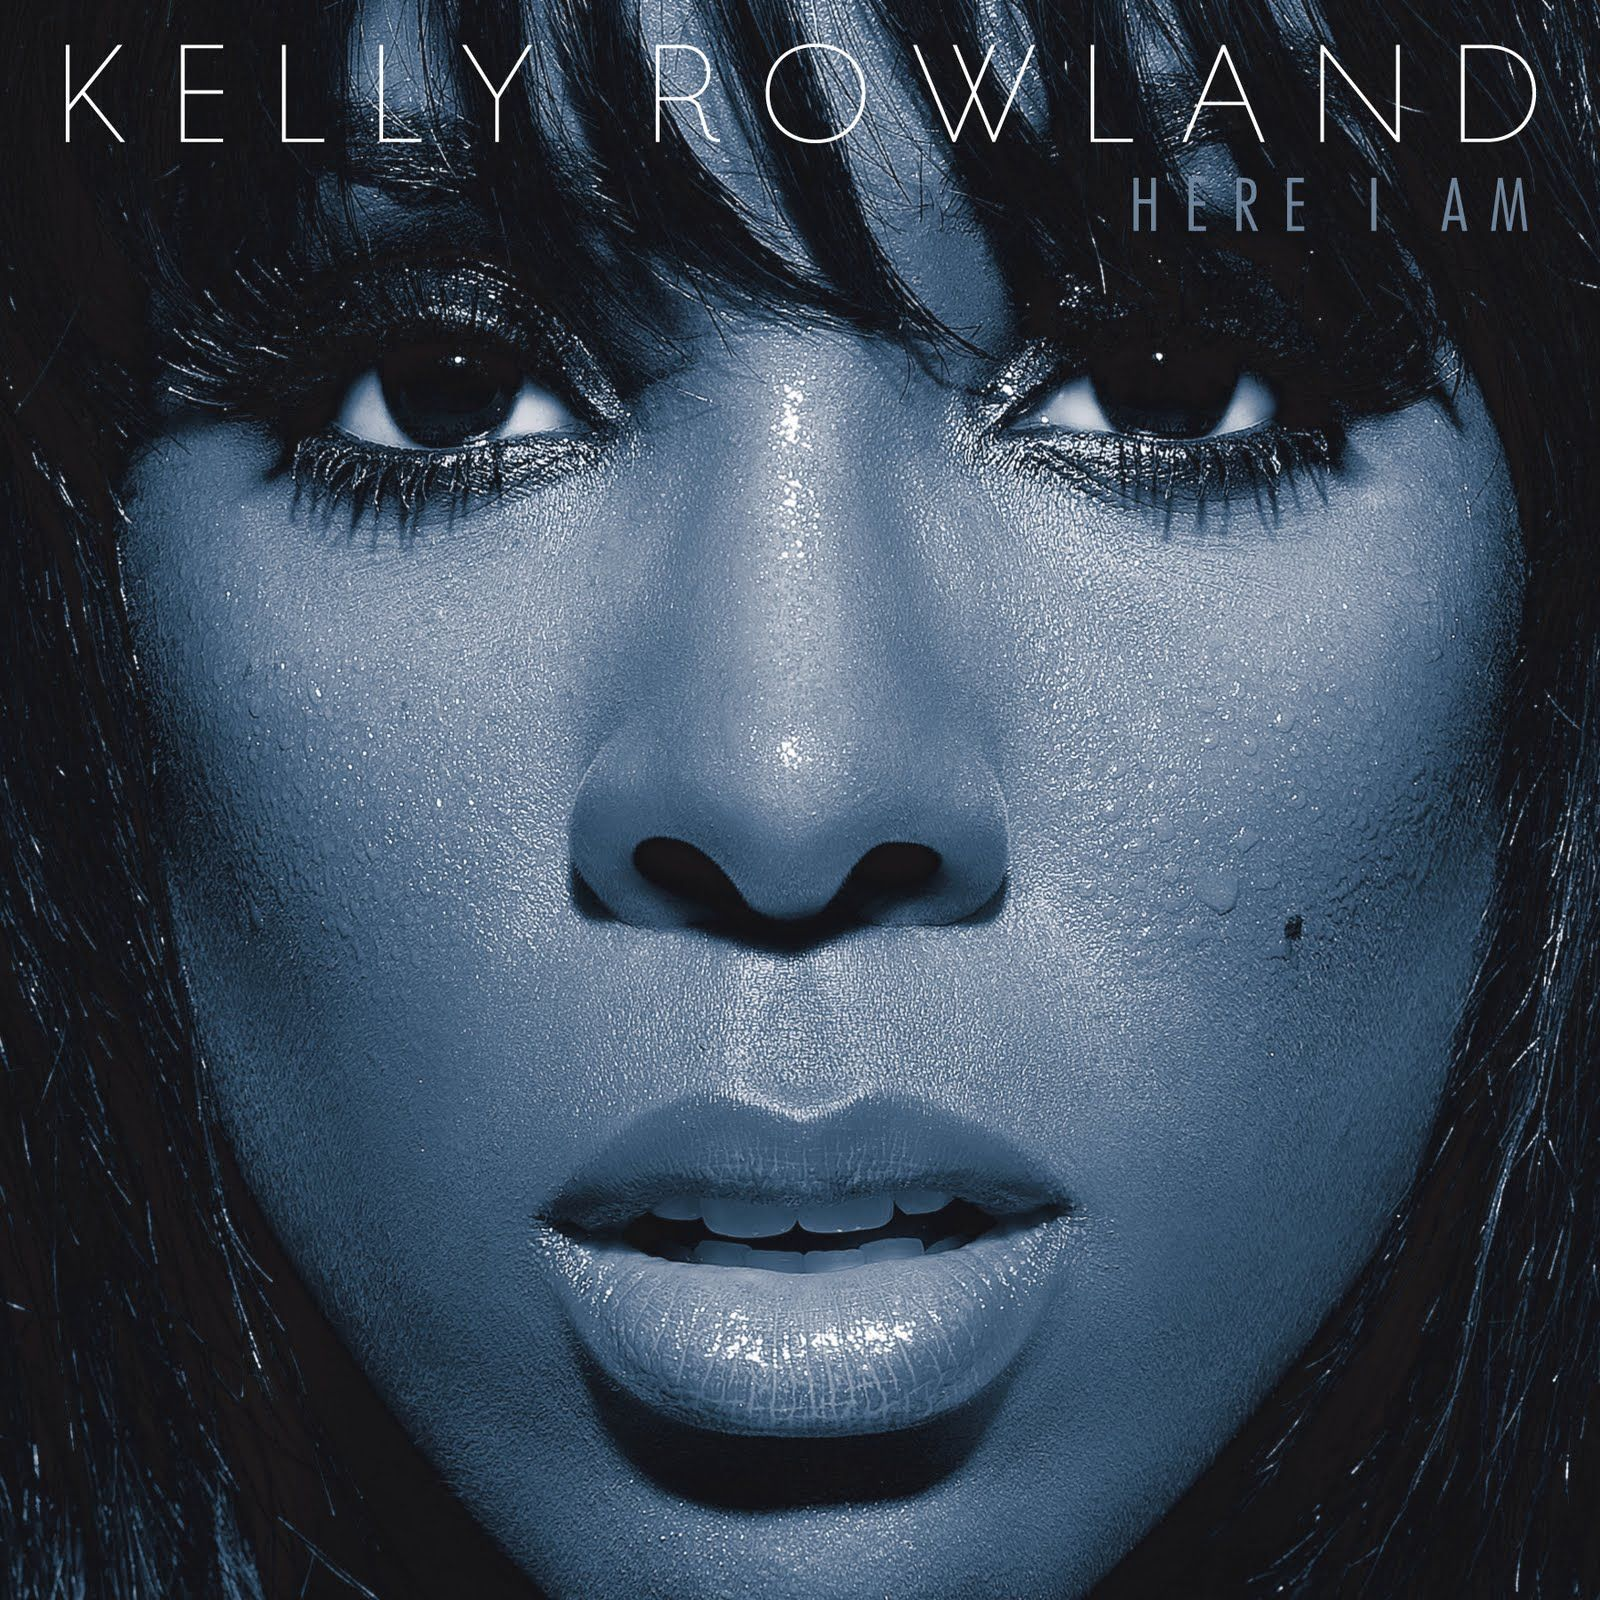 Kelly Rowland - Here I Am album cover